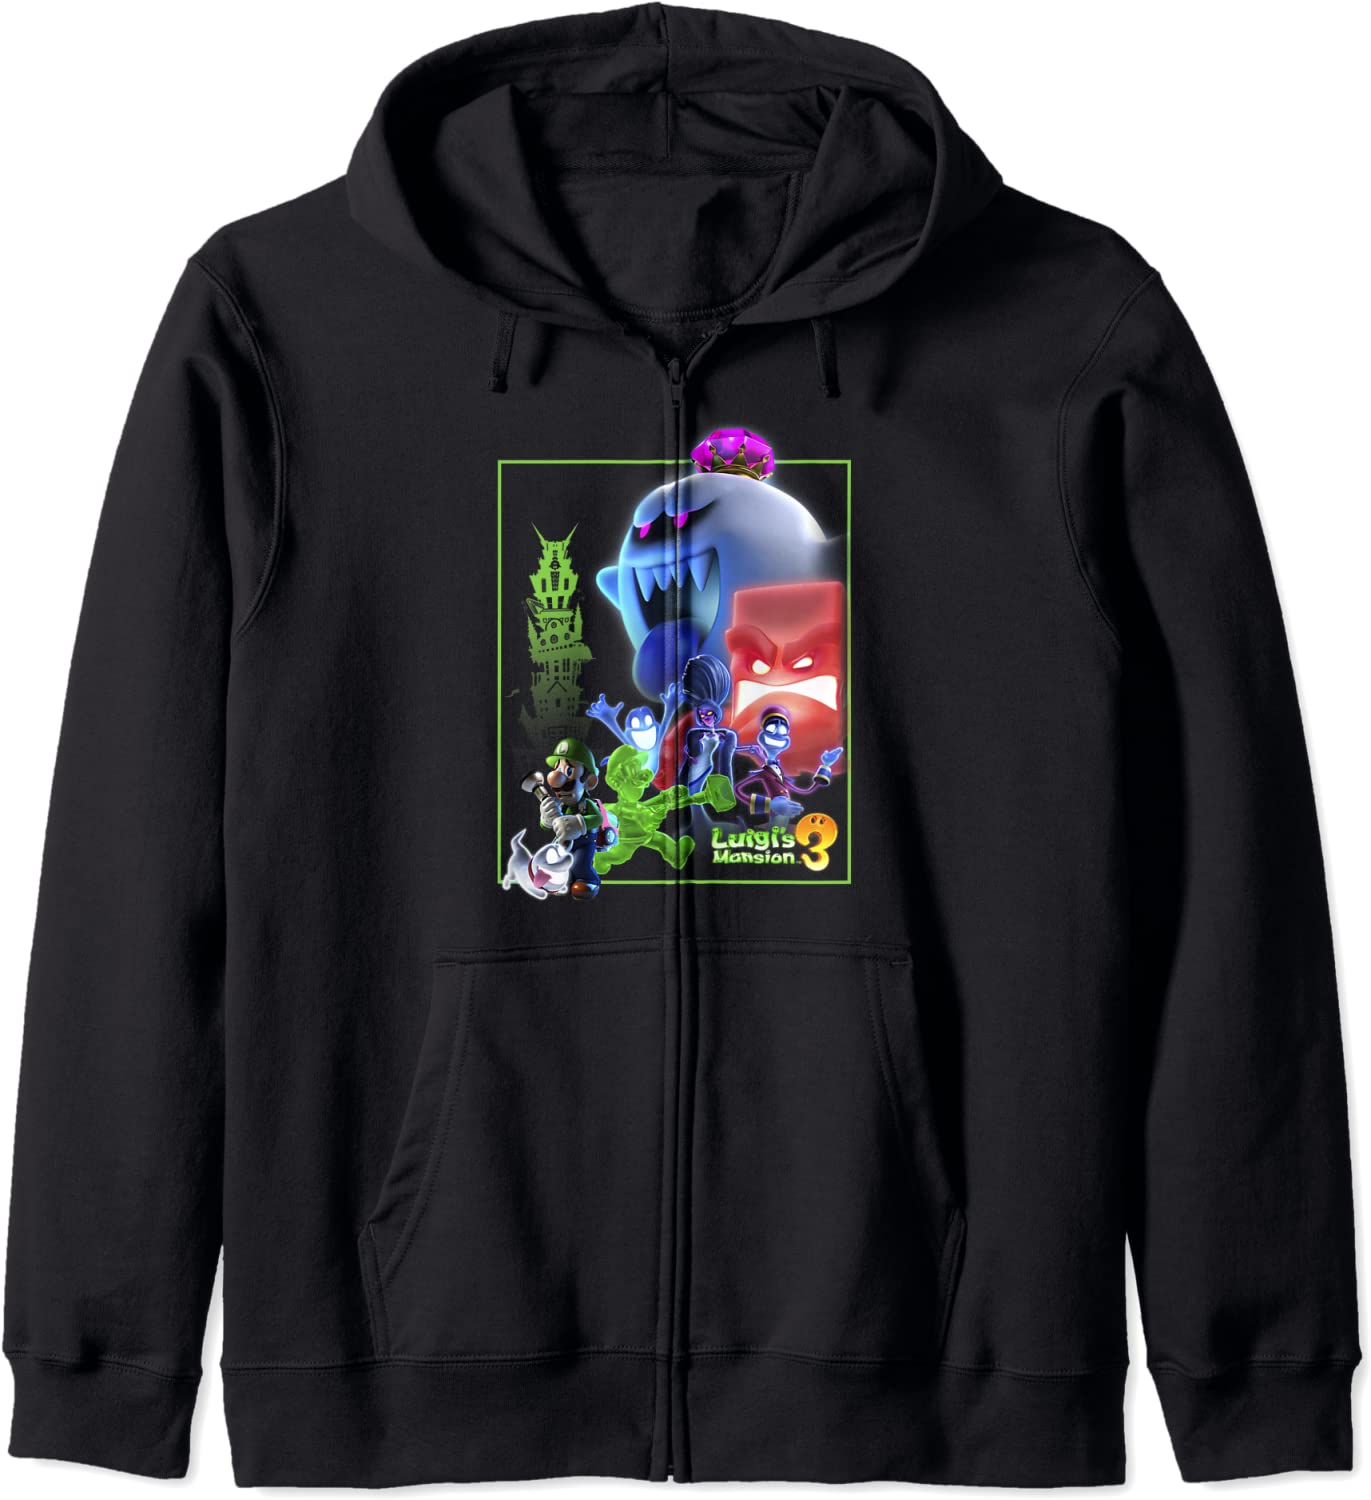 Luigi's Mansion 3 Collage Zip Poster Hoodie Inventory cleanup selling sale Reservation